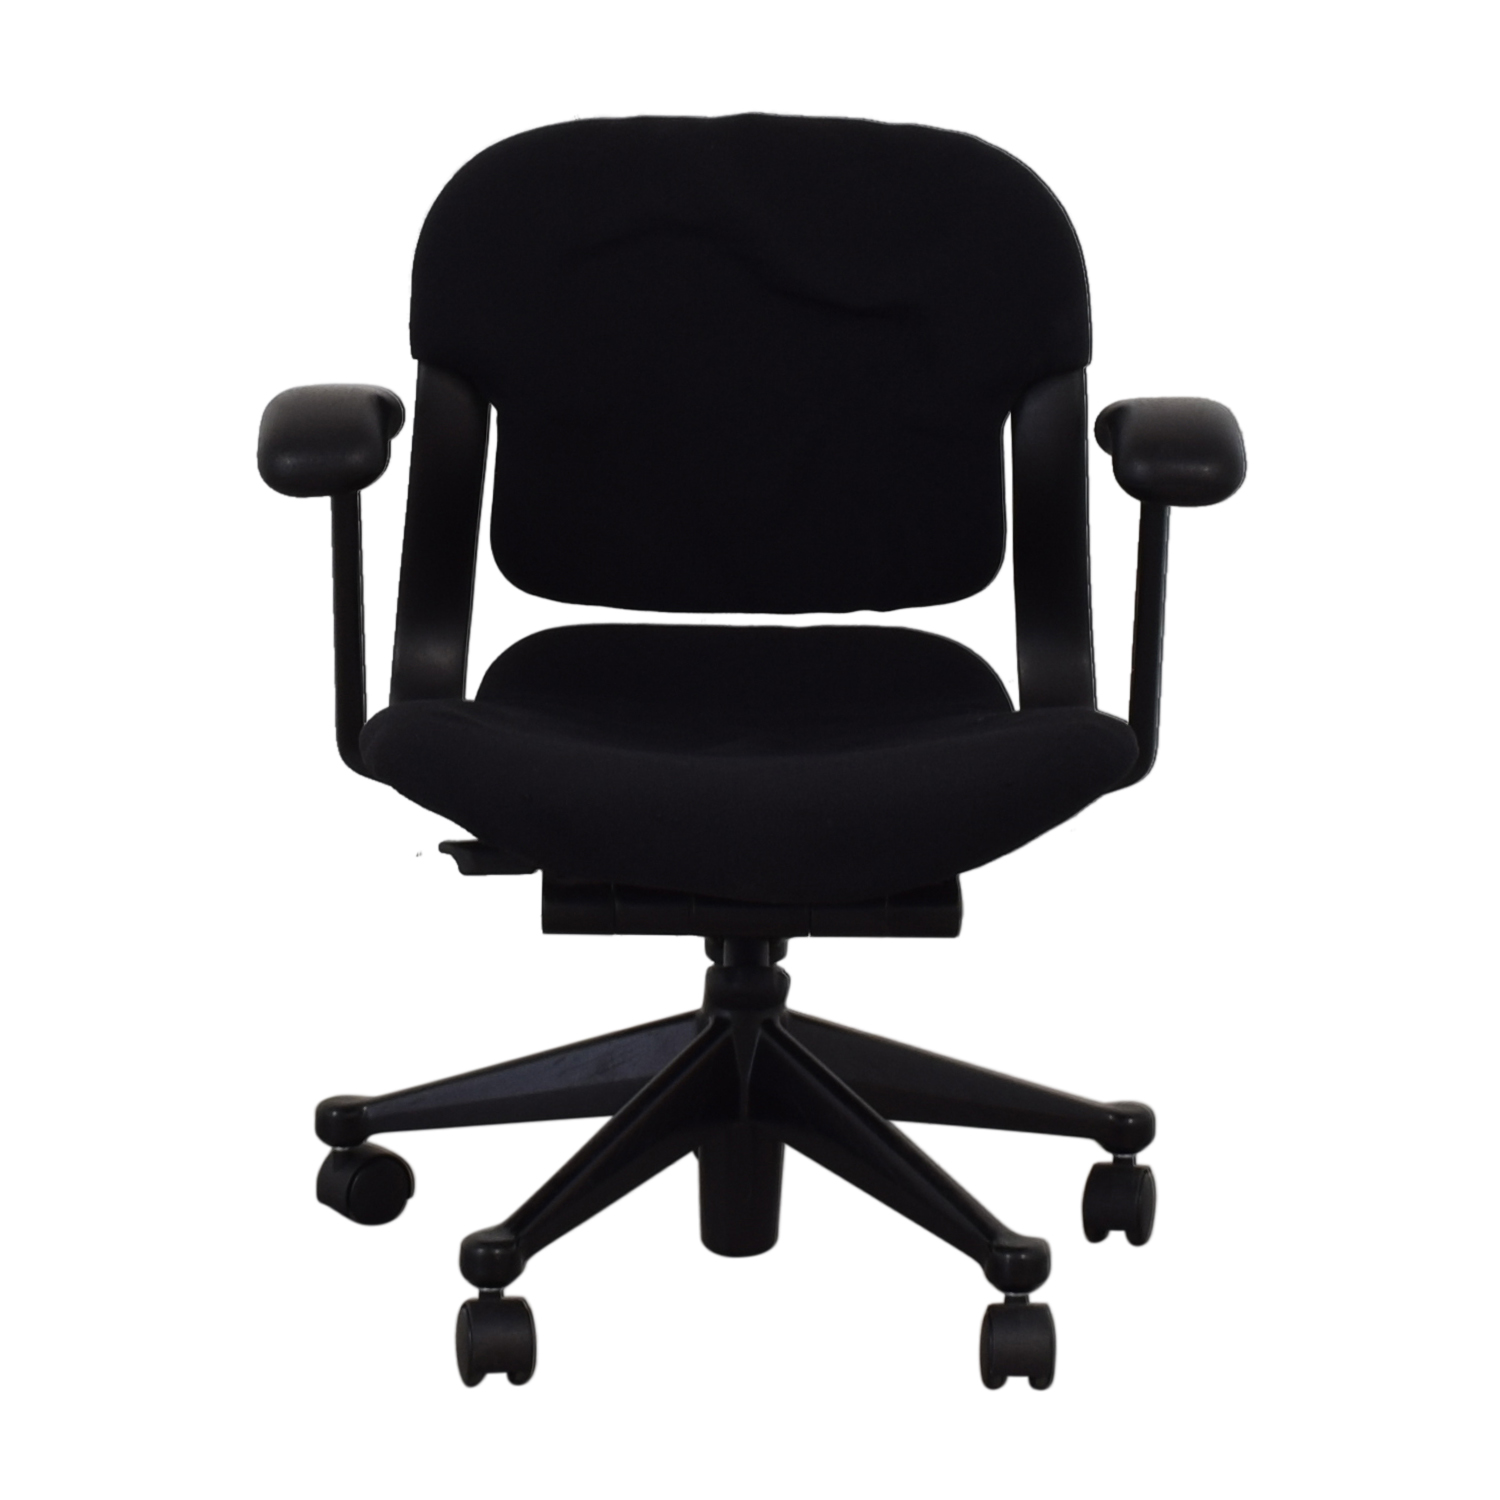 Black Office Chair discount